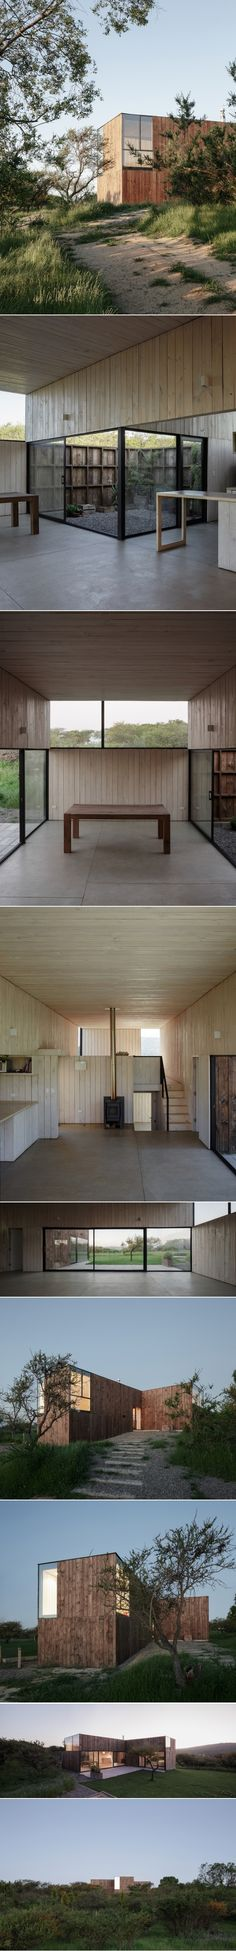 Architect Visit: In Chile, a 1,400-Square-Foot House Rests Lightly on the Land: Gardenista